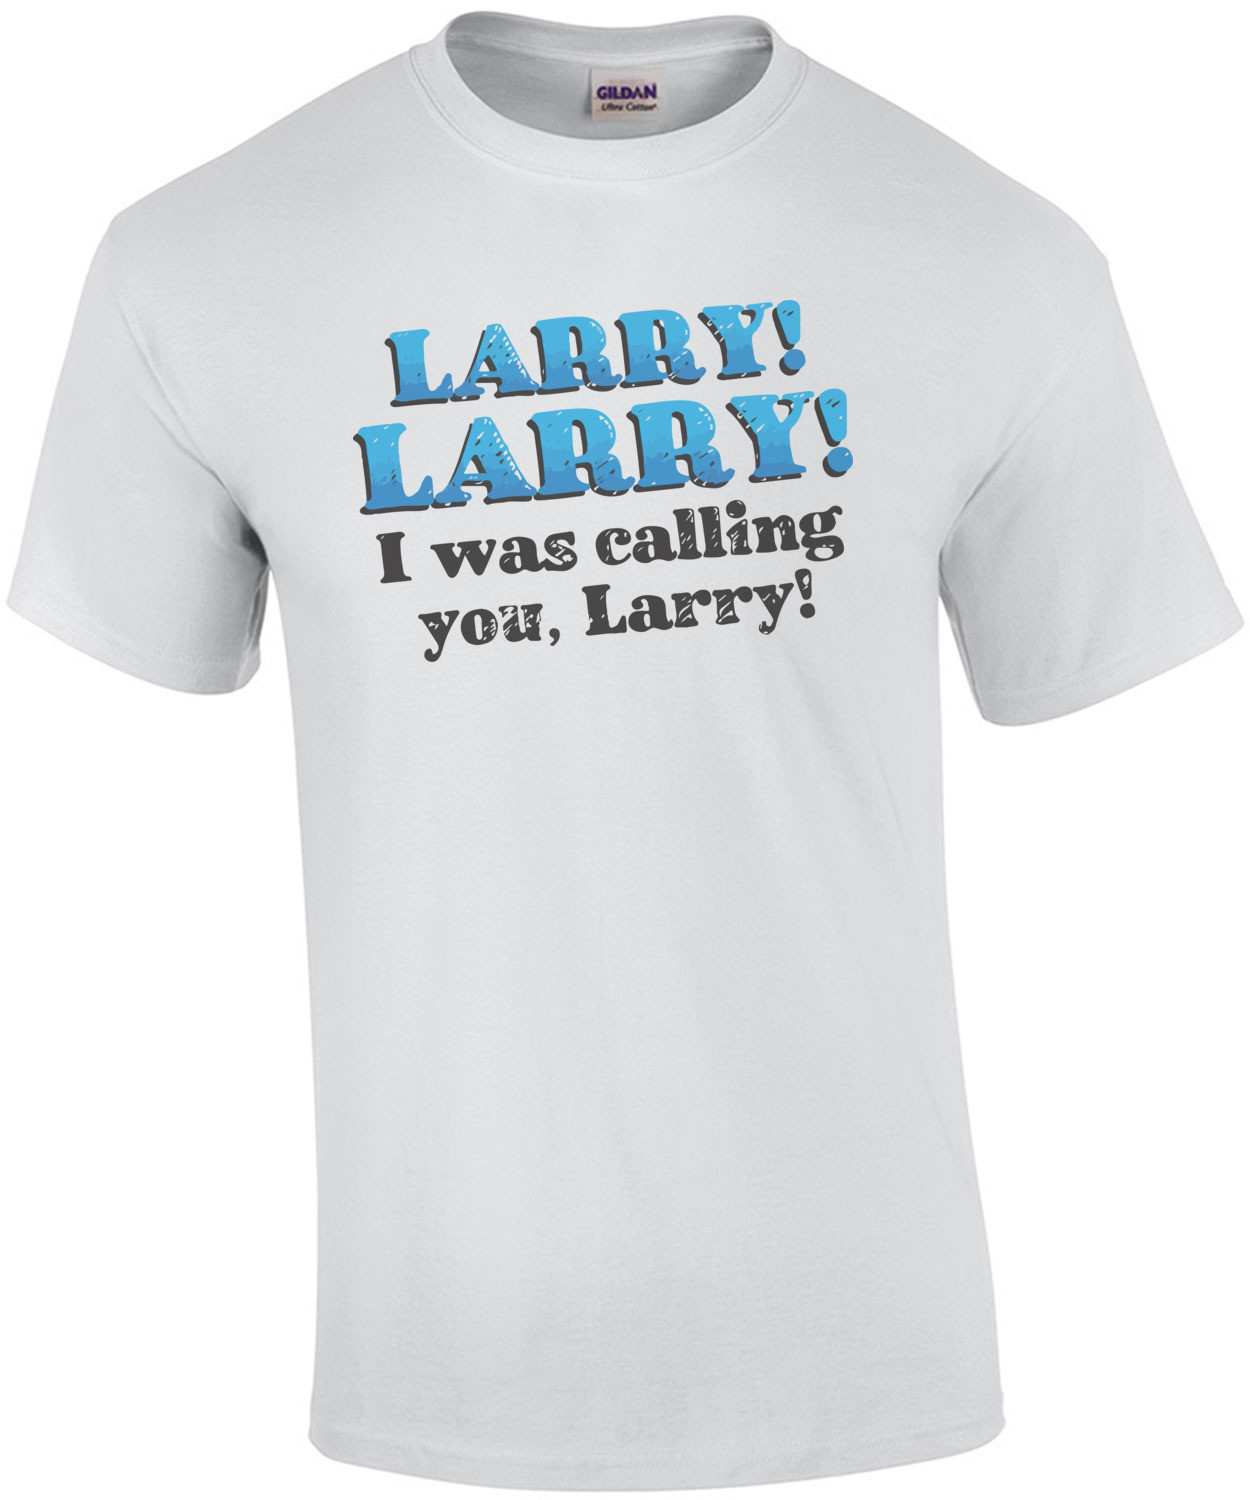 Calling Larry. Larry! Larry! I was calling you, Larry! Impractical Jokers